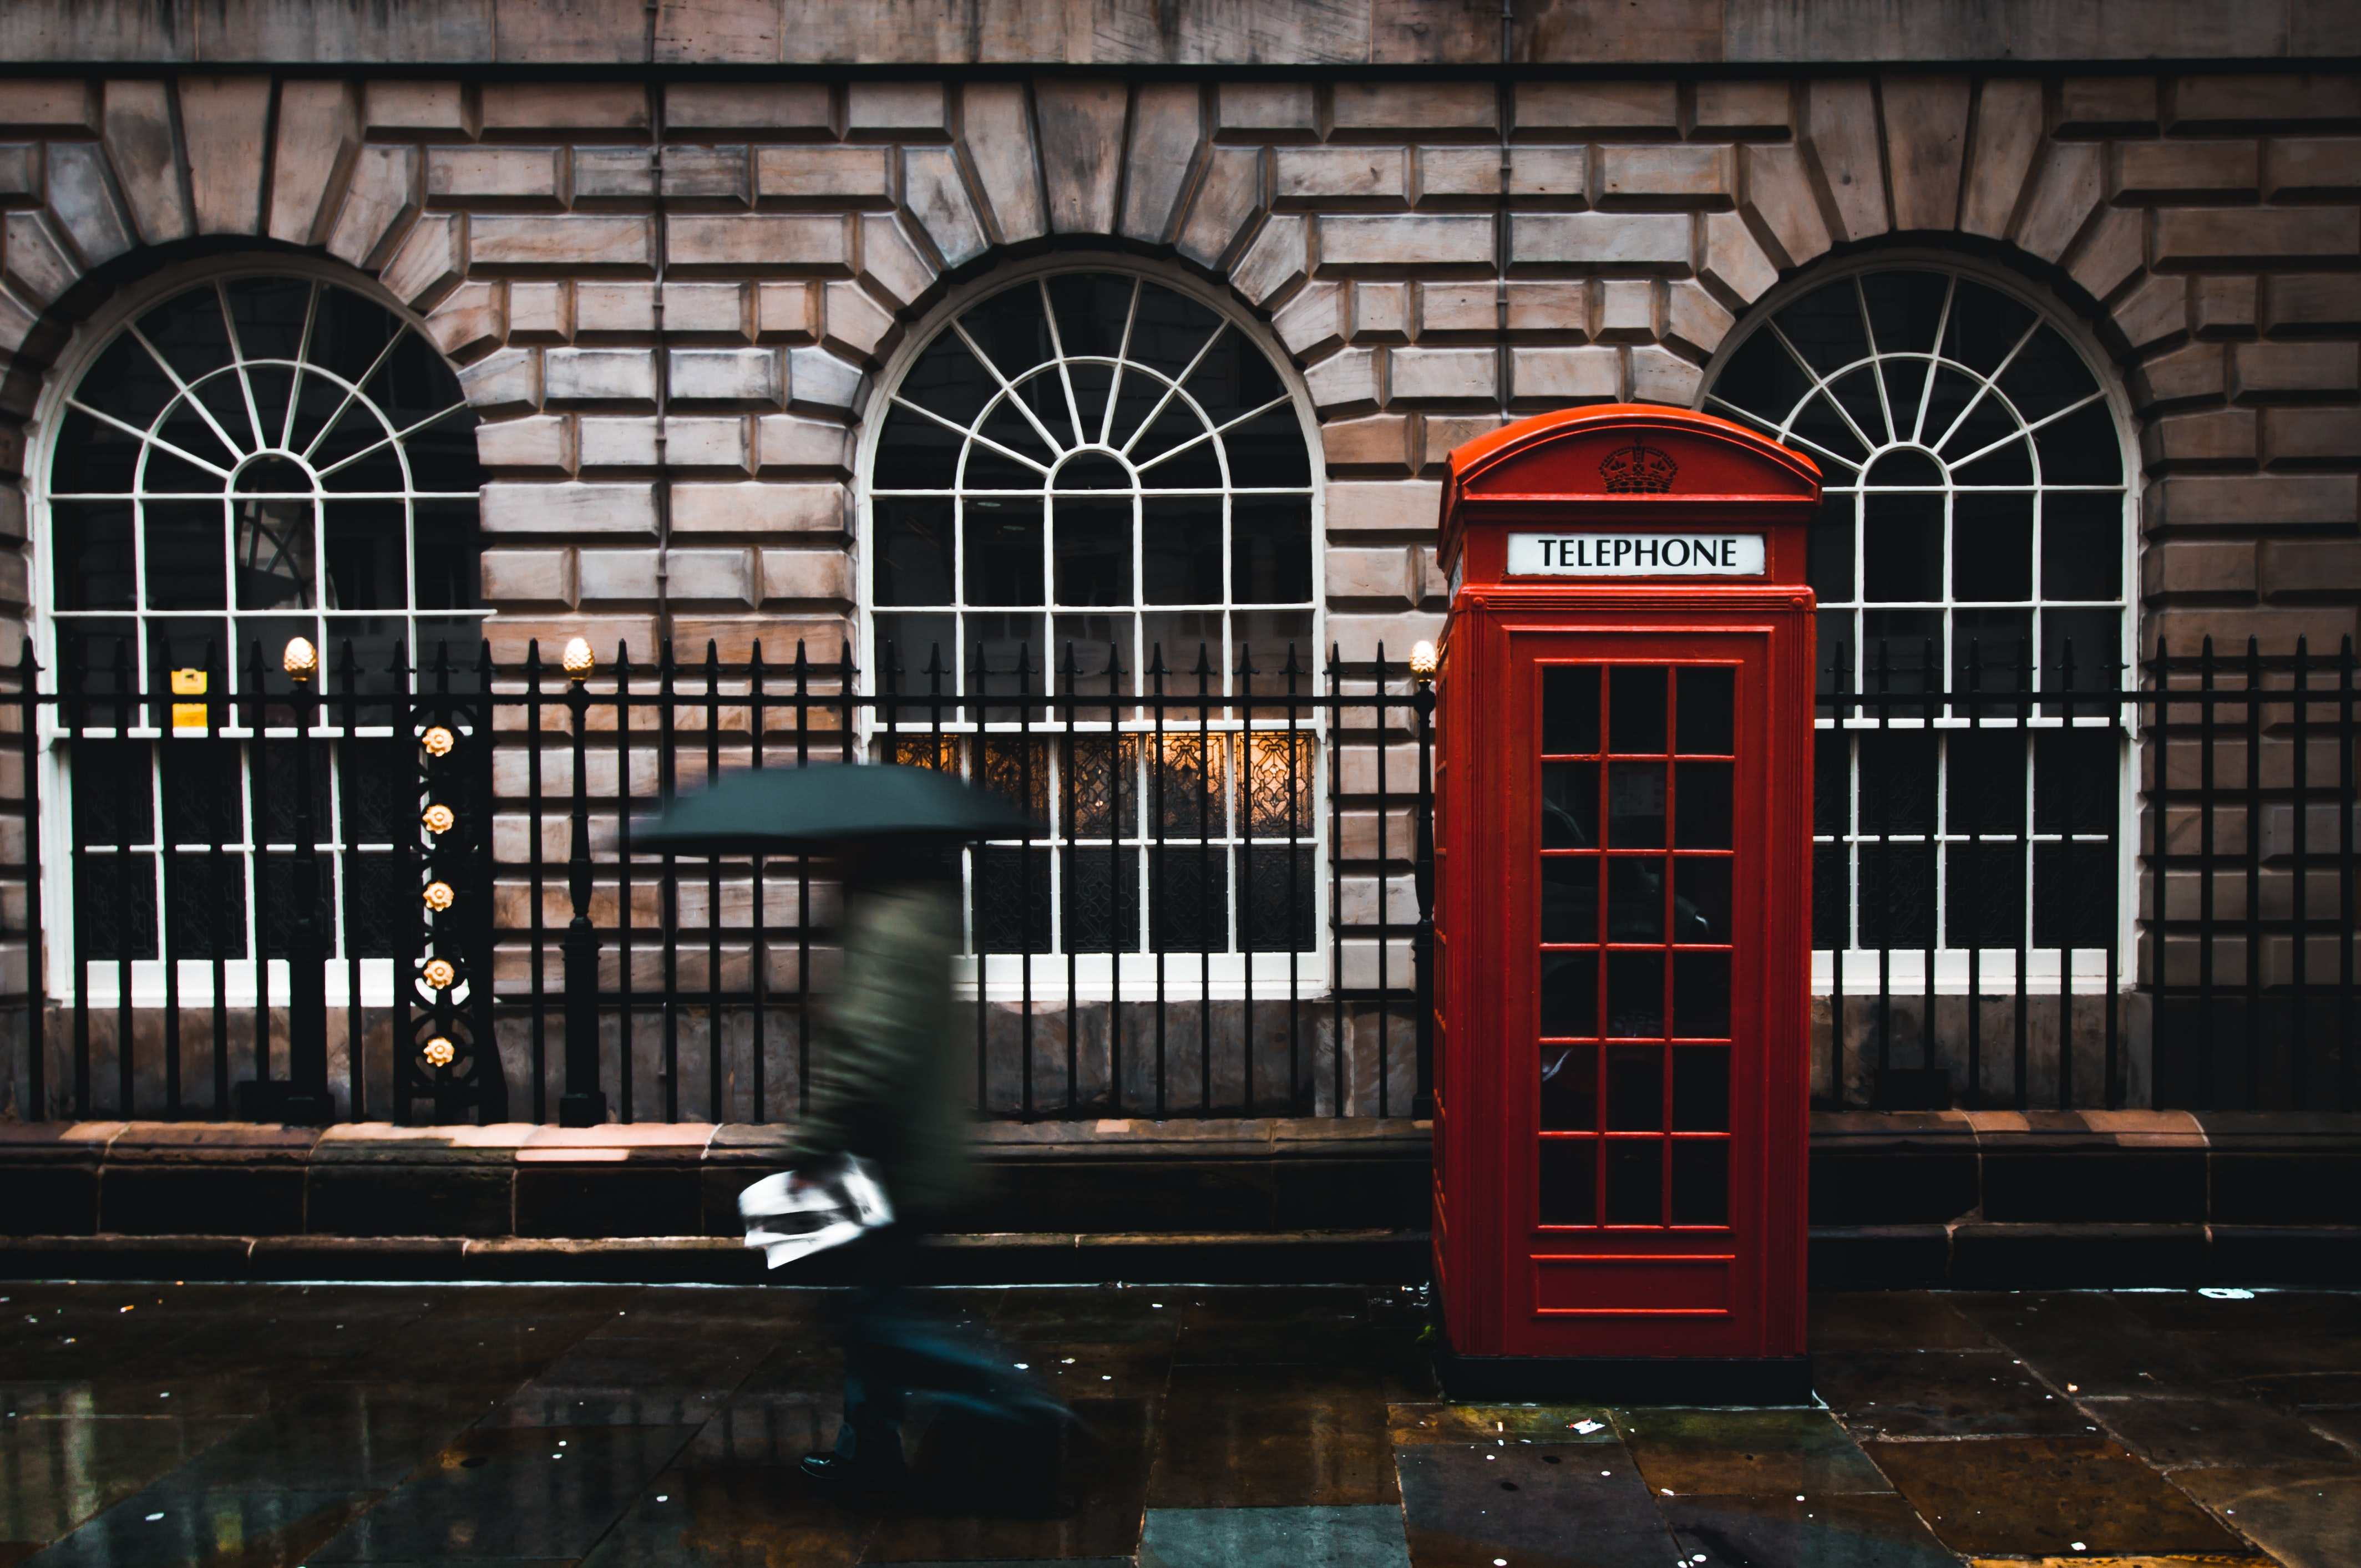 time lapse photography of woman walking on street while holding umbrella near London telephone booth beside wall